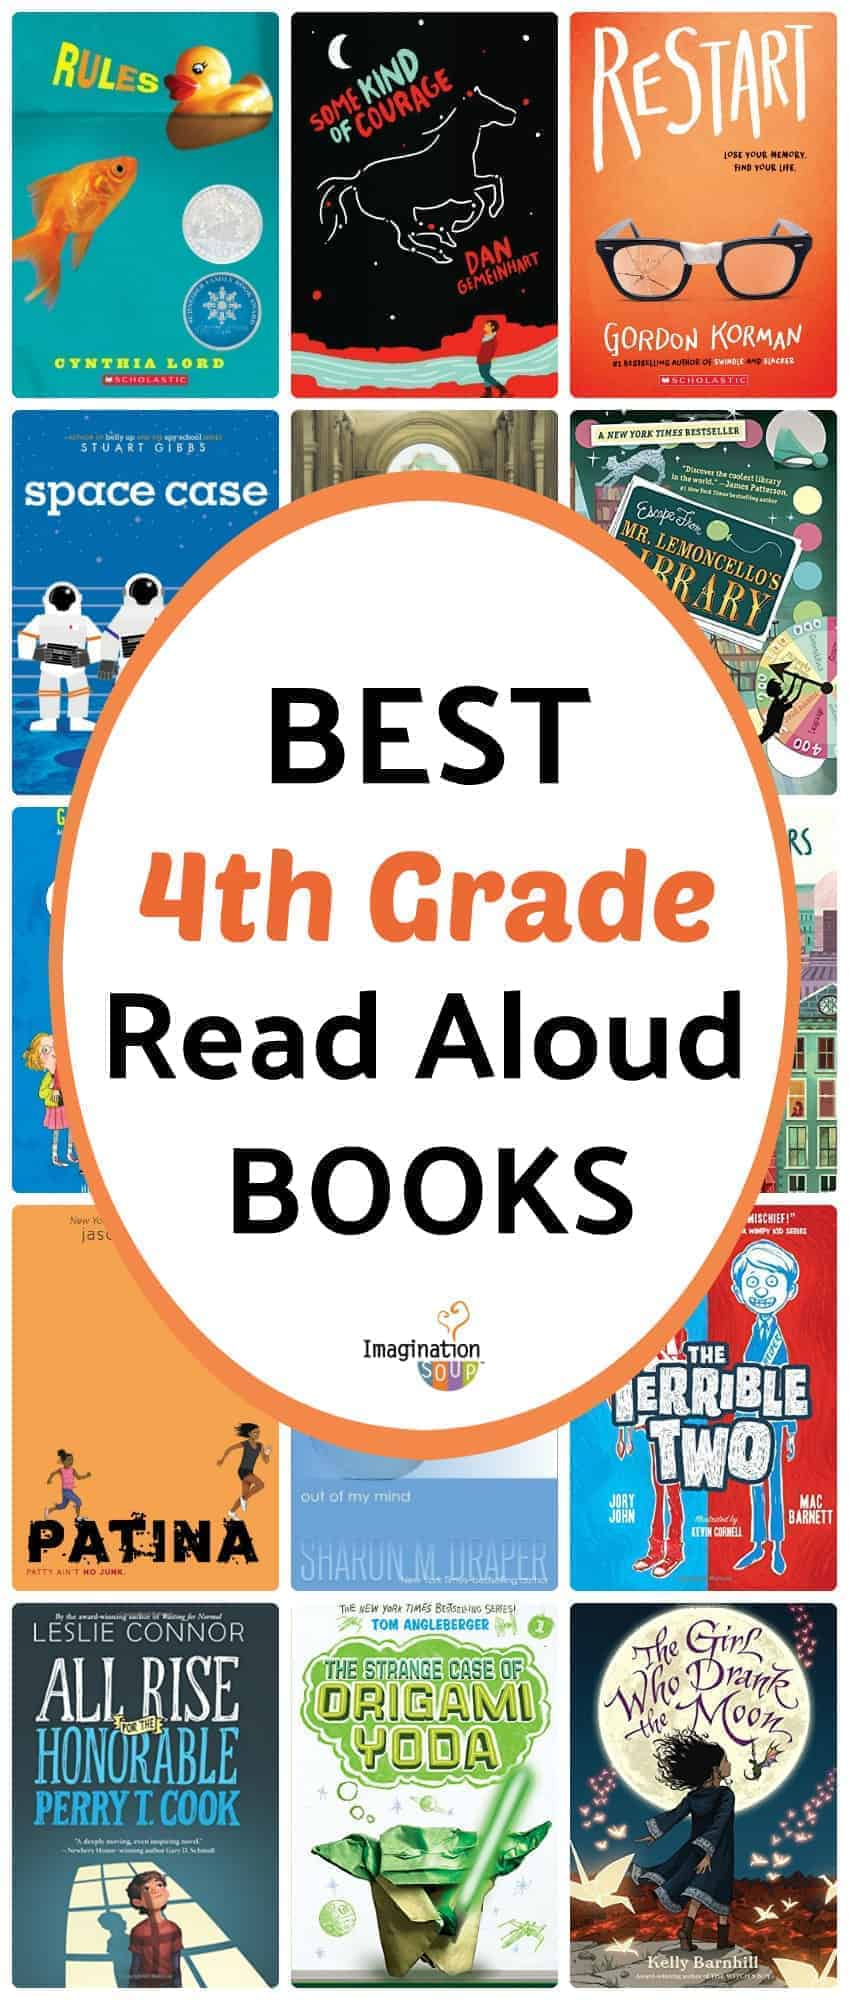 the best read aloud books for 4th grade (9 years old)